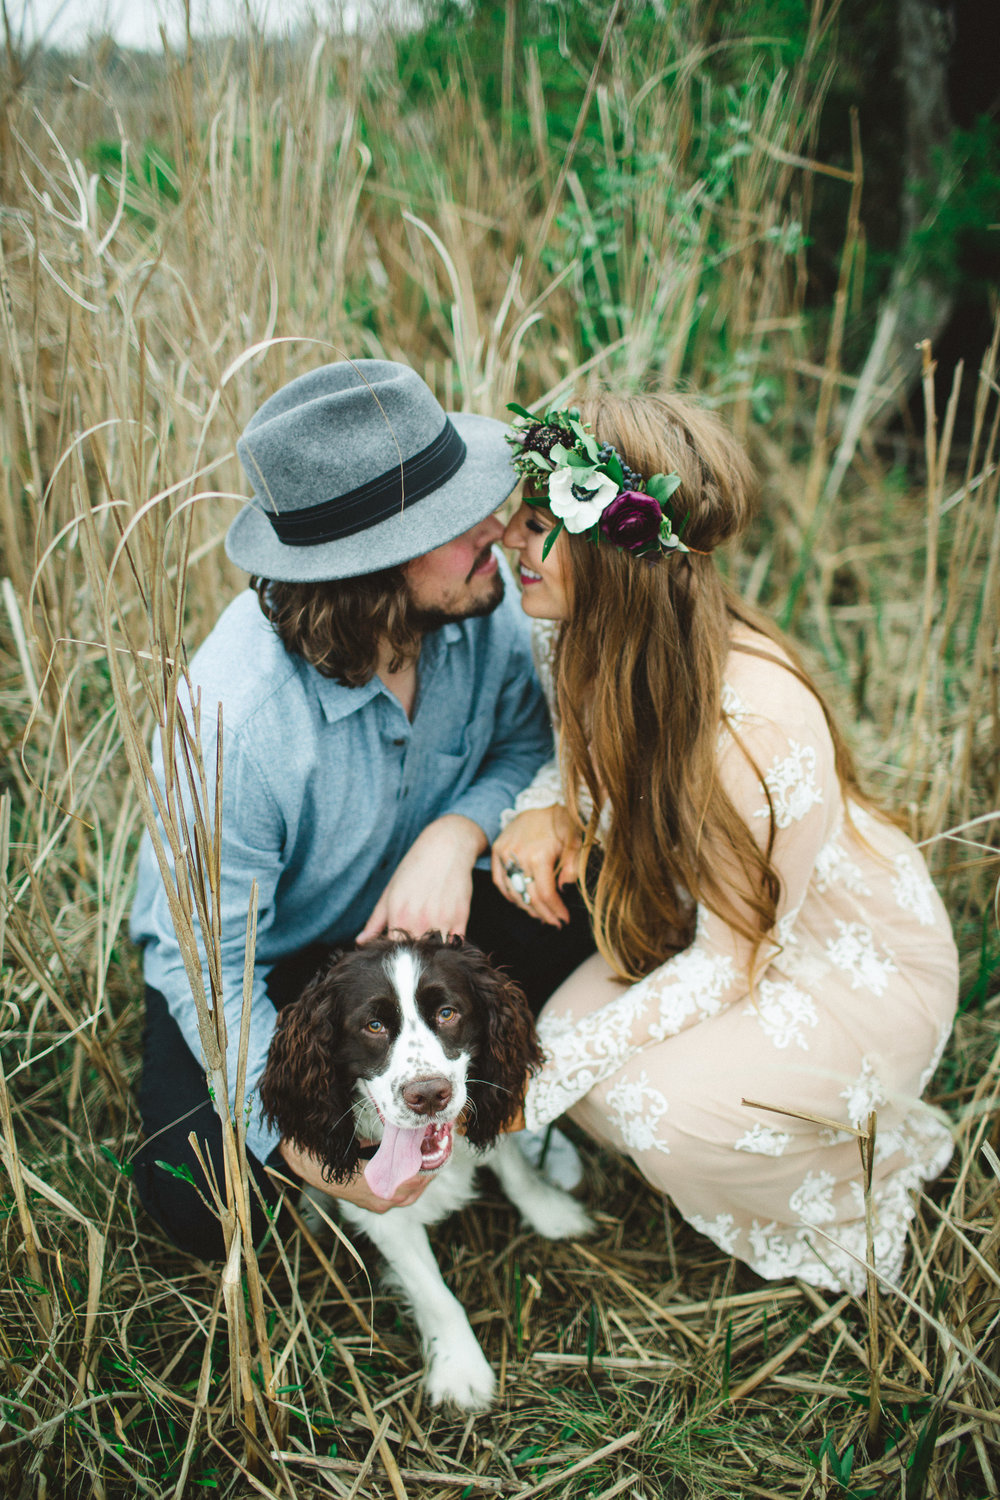 nicole-and-alex-engagement-ivory-and-beau-savannah-wedding-planner-savannah-engagement-session-at-old-dairy-farm-women-in-business-savannah-bridal-boutique-savannah-wedding-planner-savannah-florist-dairy-farm-engagement-shoot-savannah-weddings.jpg